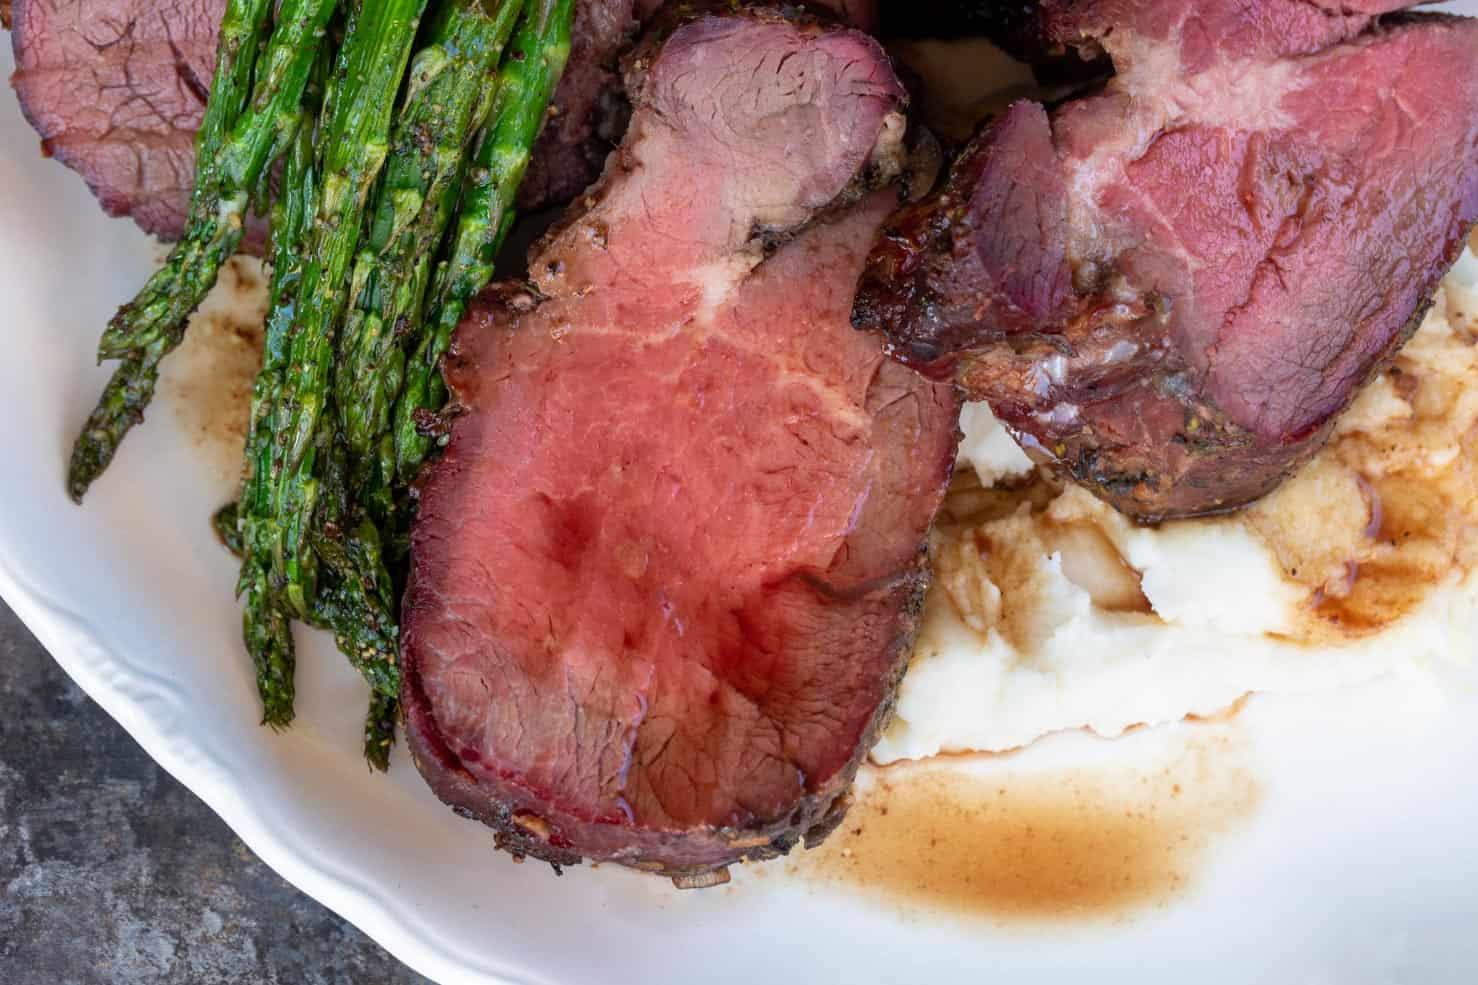 A white plate filled with mashed potatoes, sliced of pink and juicy smoked beef tenderloin medallions, and roasted asparagus.